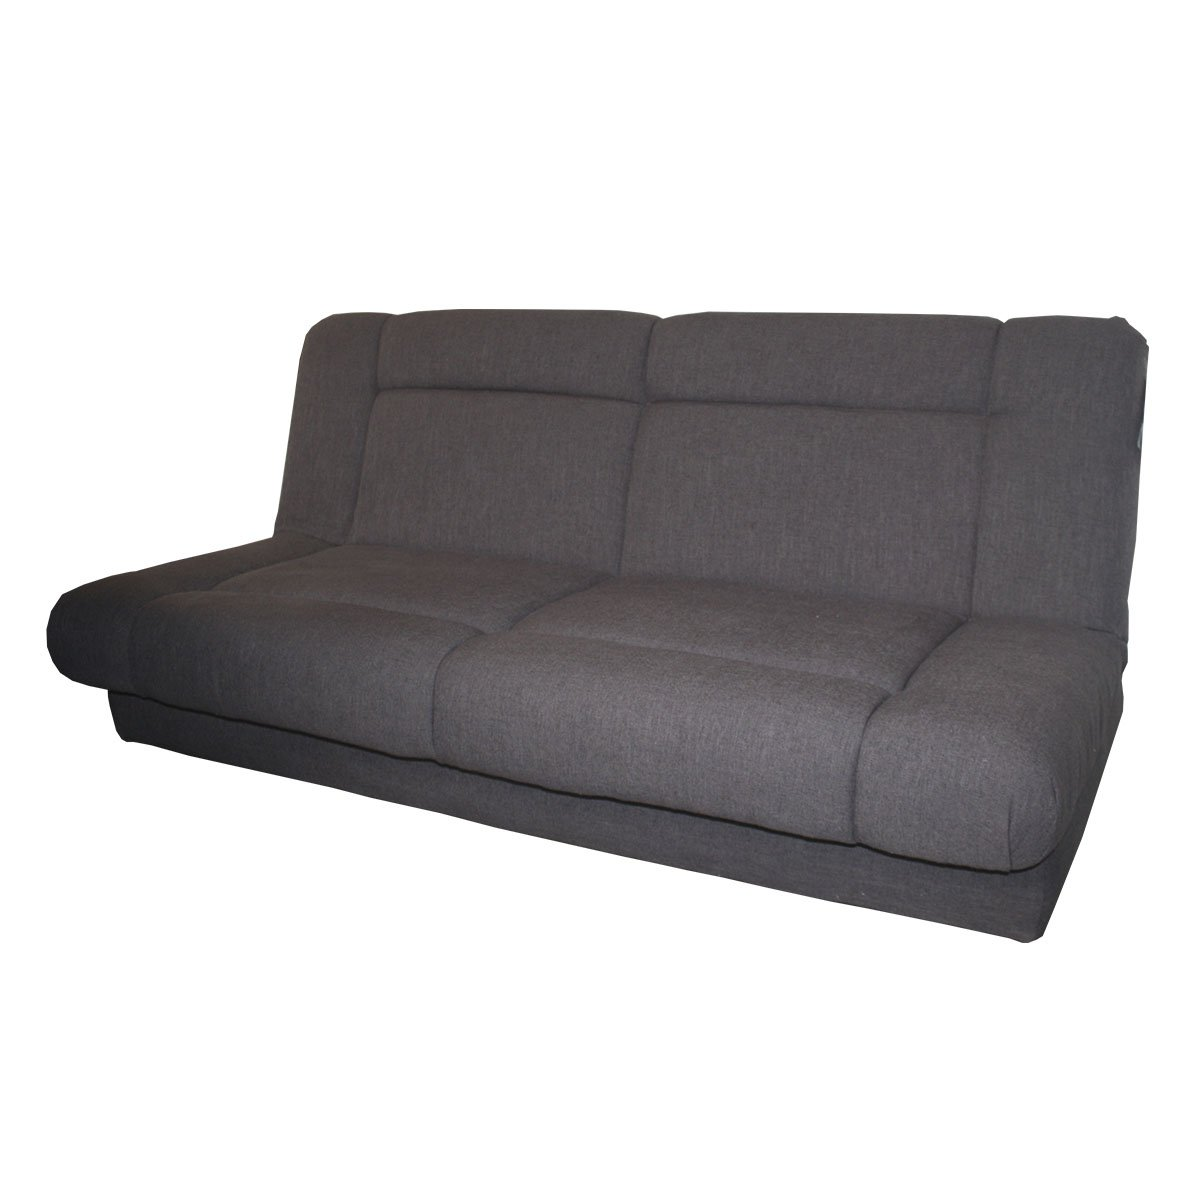 sofa cama sears mexico that turns into a bed name paola com mx me entiende